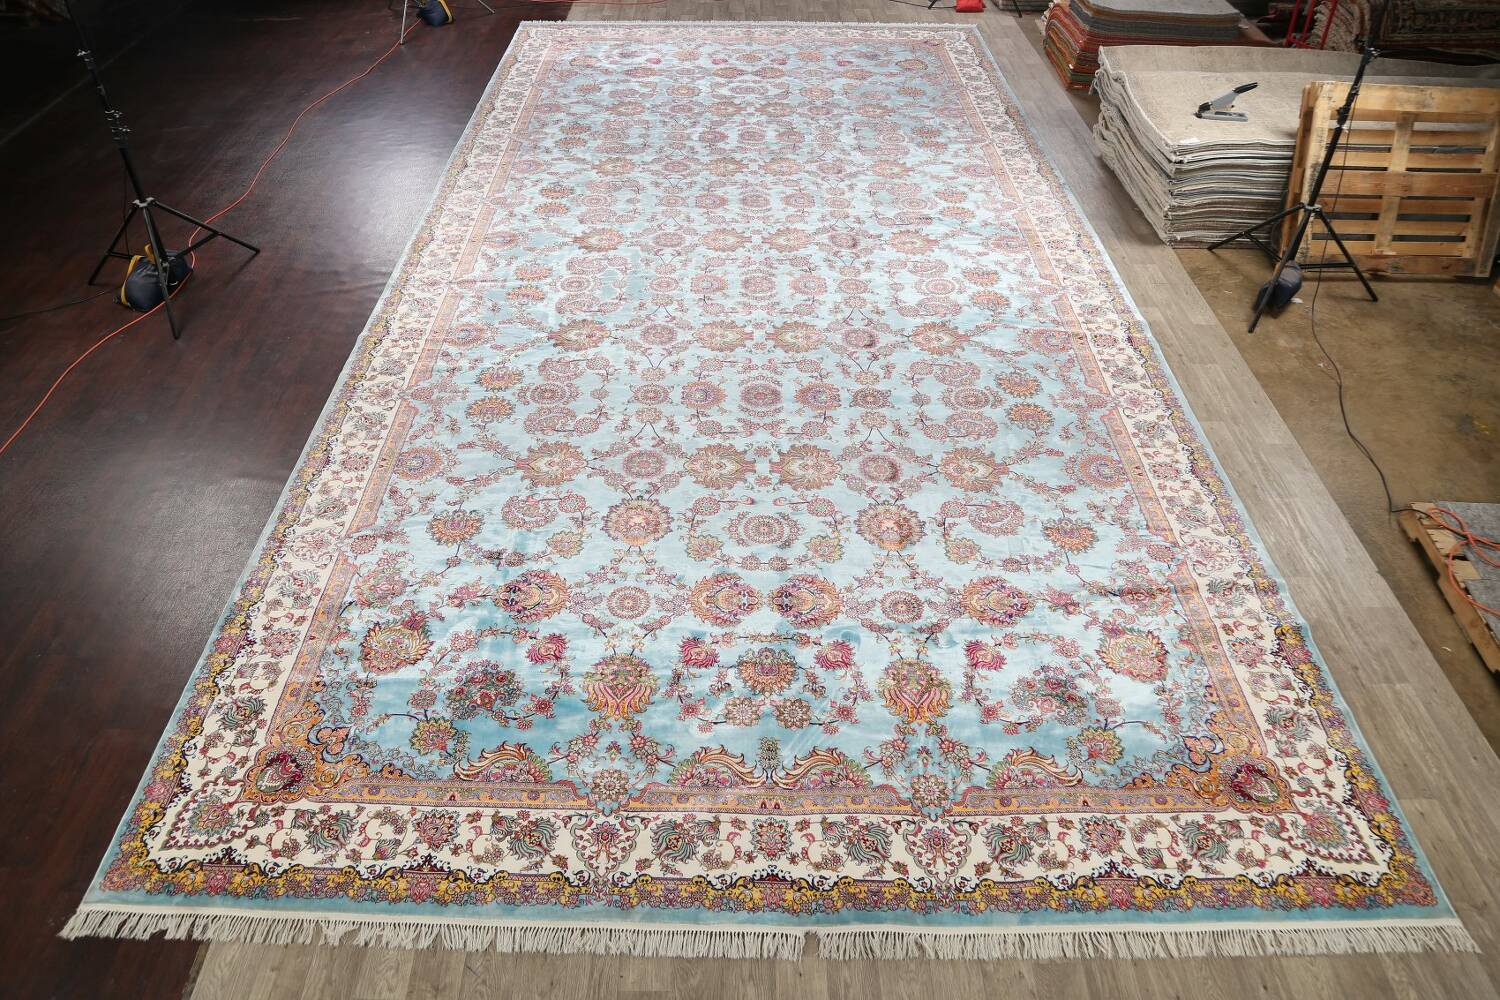 All-Over Floral Silk Large Tabriz Persian Area Rug 13x27 image 2